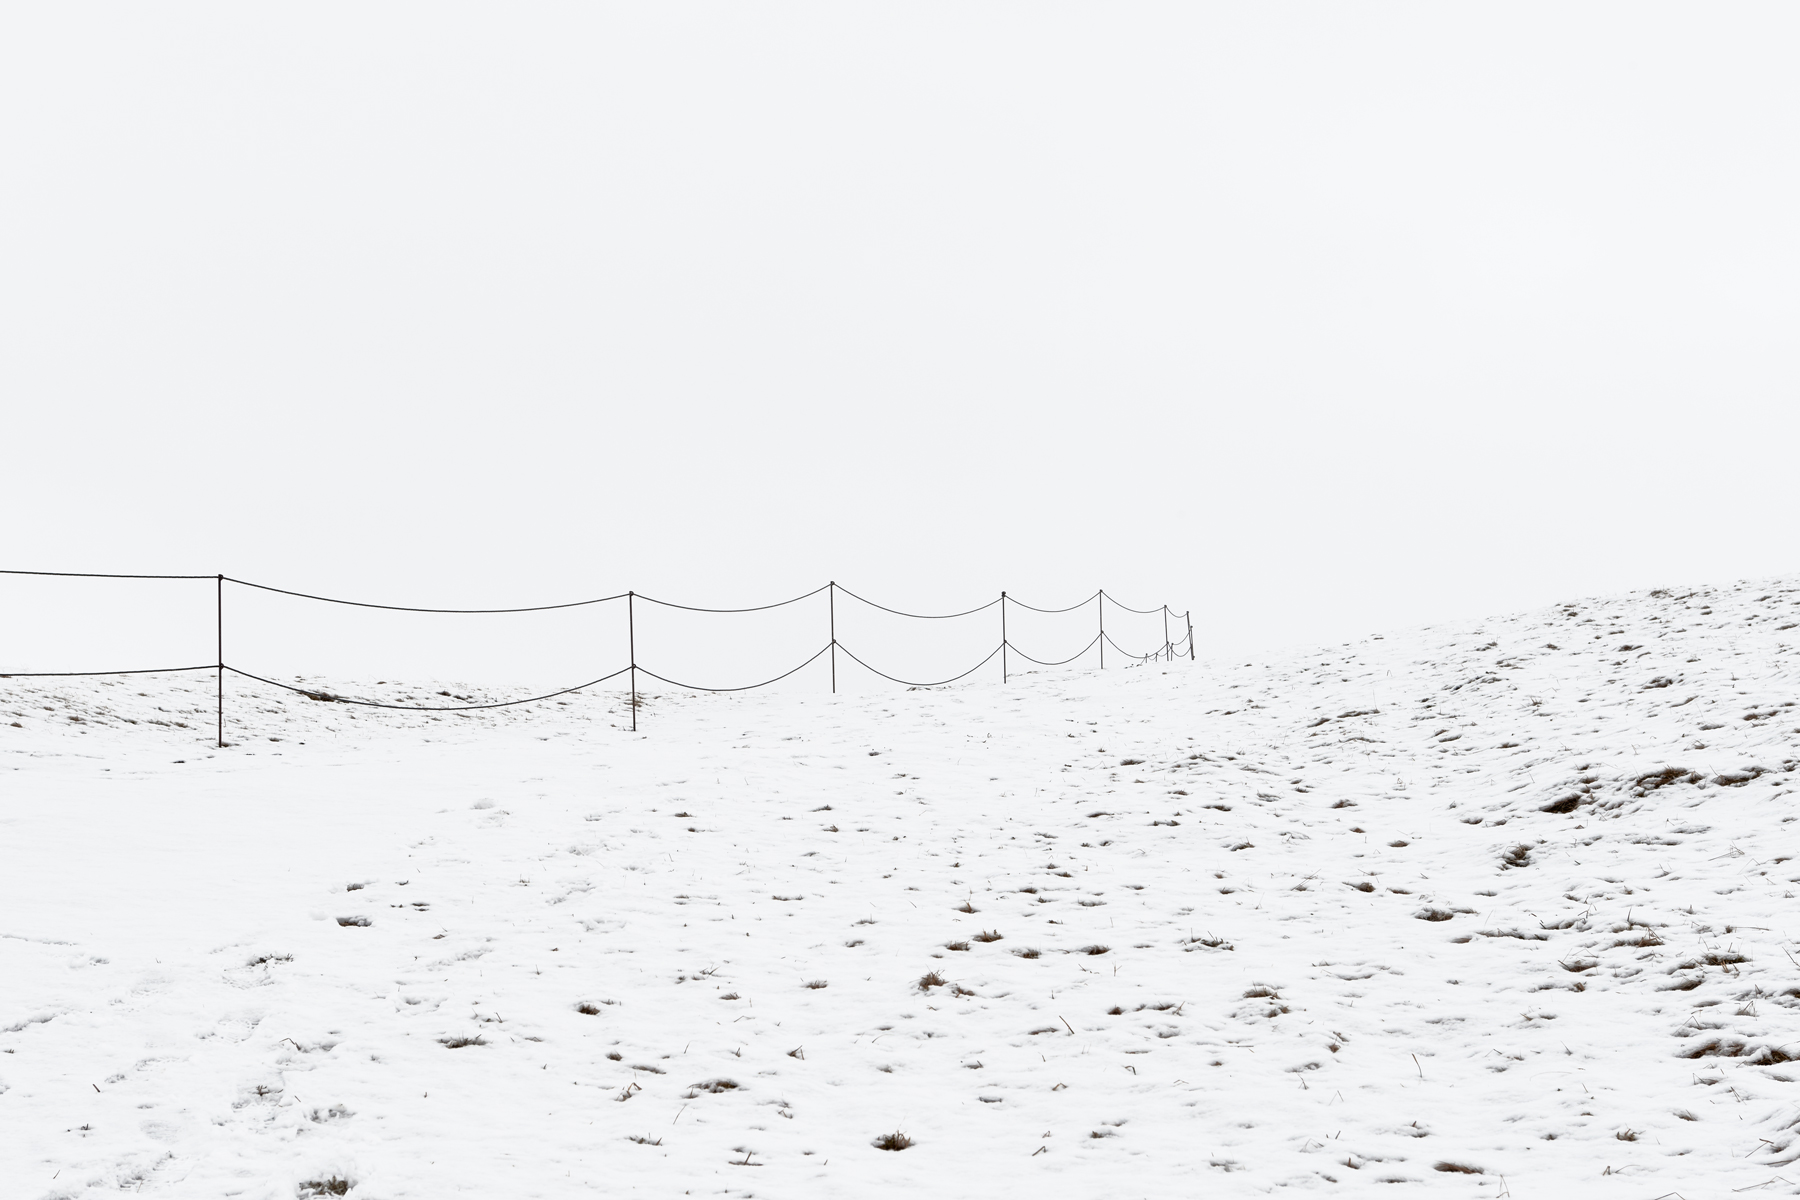 Snowy landscape in Iceland with small fence. Kirsty Owen Photography.